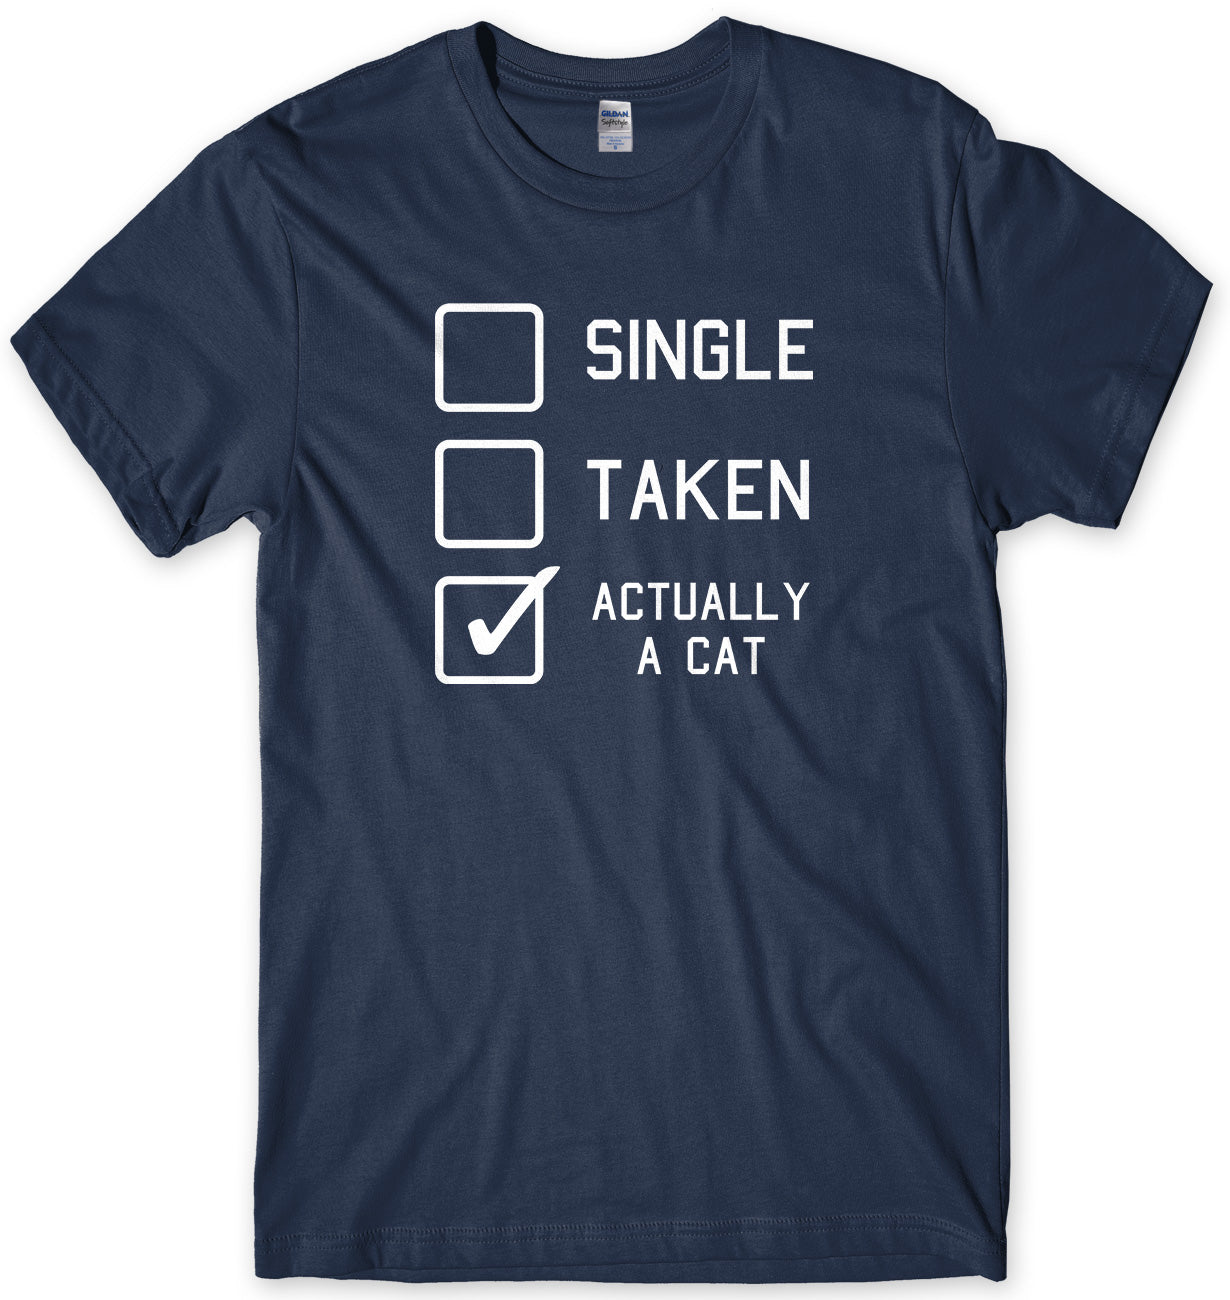 Single, Taken, Actually A Cat Mens Unisex Style T-Shirt